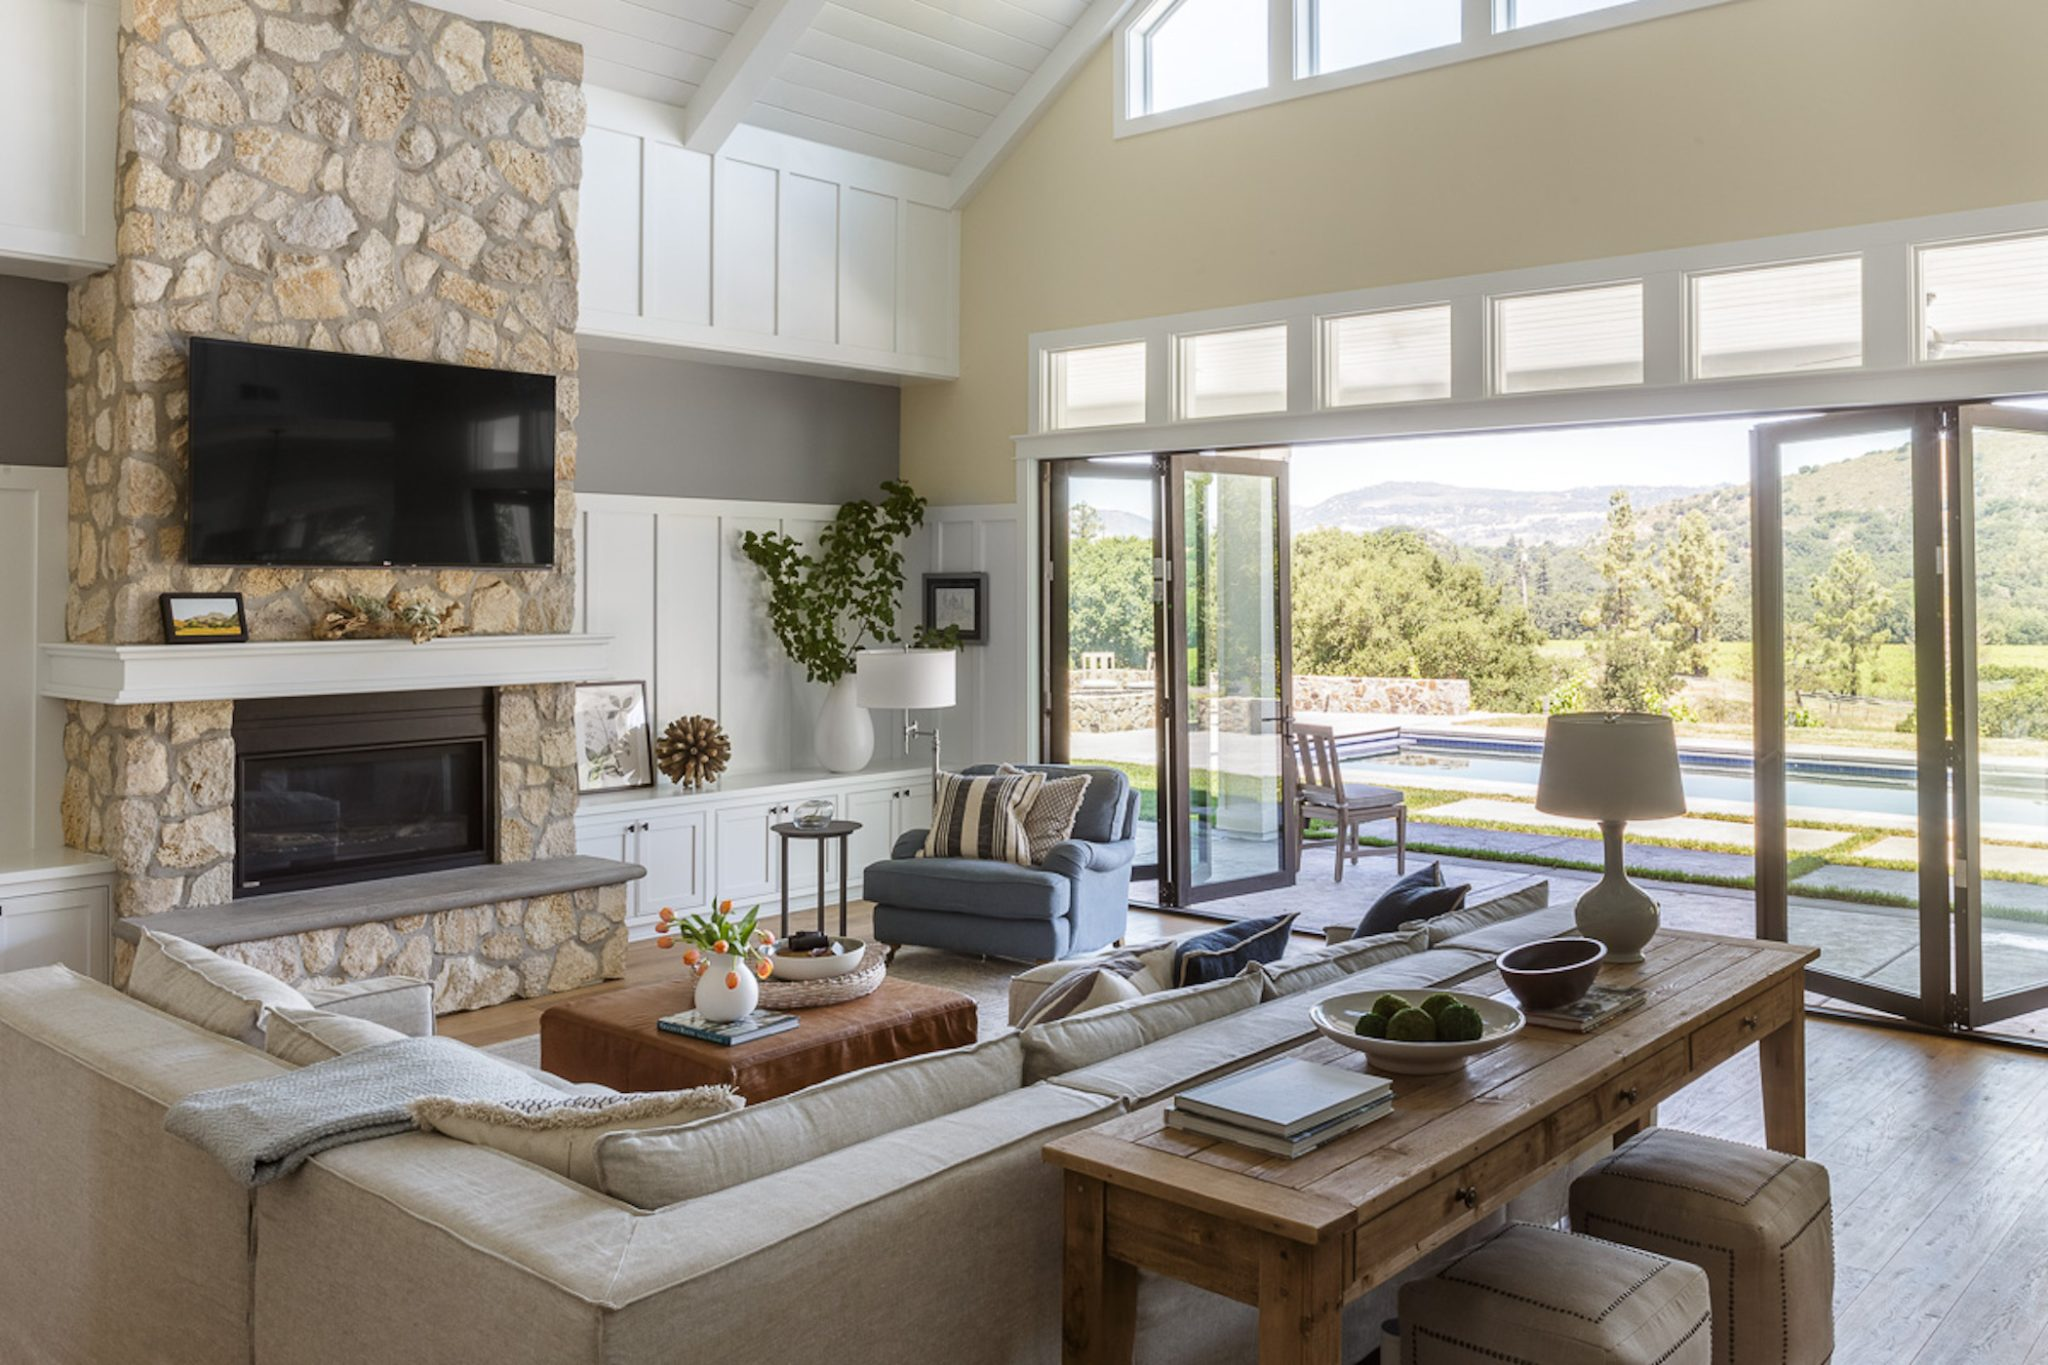 Modern farmhouse on the vineyard knoll with folding doors and stone fireplace by Miyuki Yamaguchi Design Studio